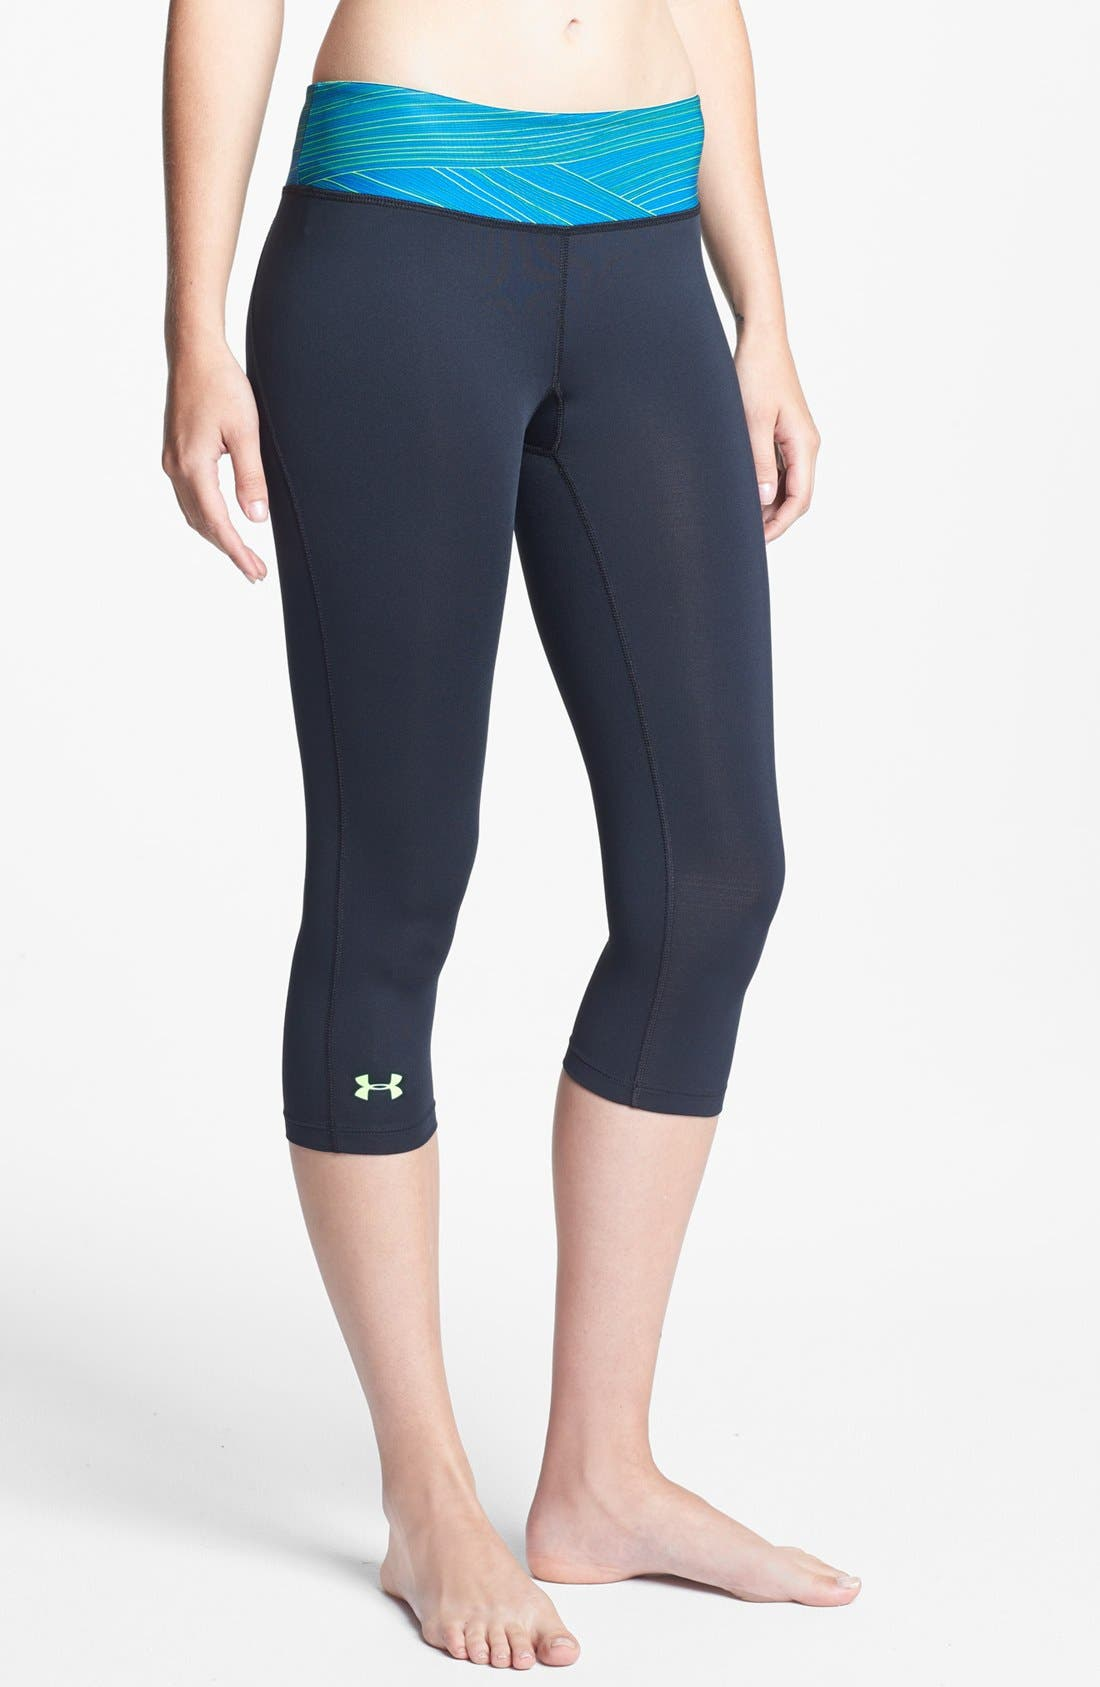 Alternate Image 1 Selected - Under Armour 'Hot Shot' Capris